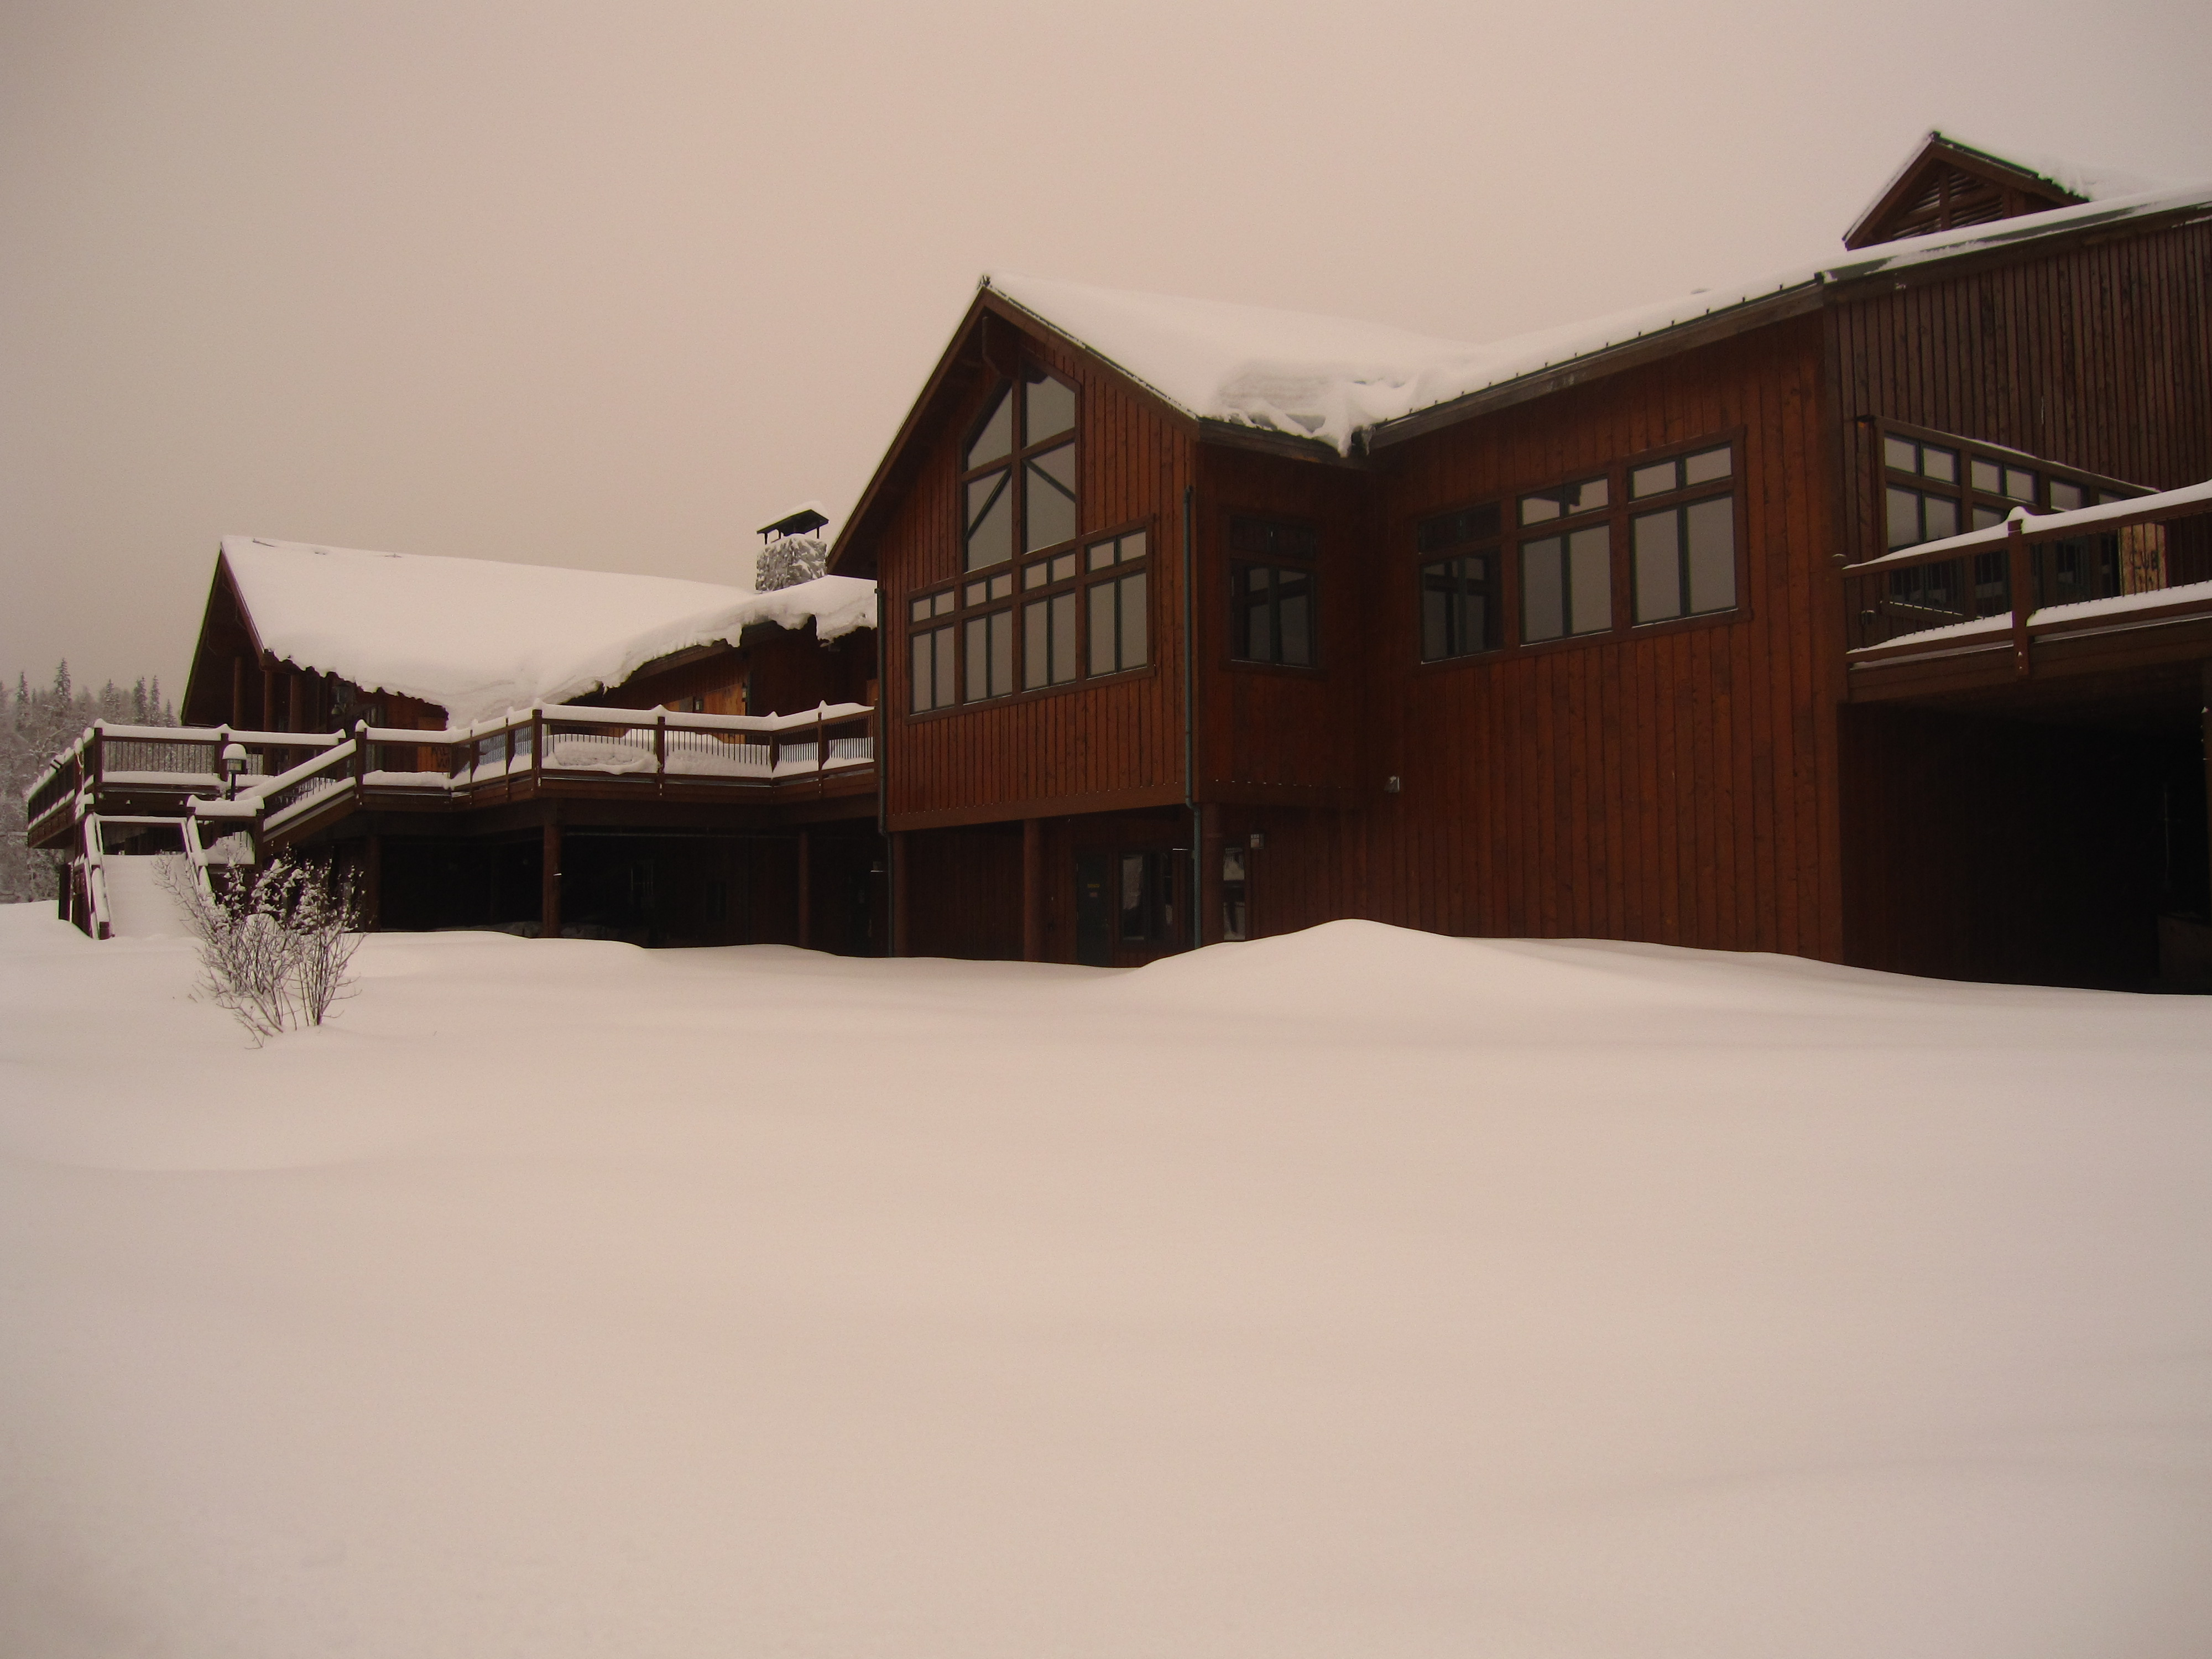 Snow-Covered McKinley Princess Lodge